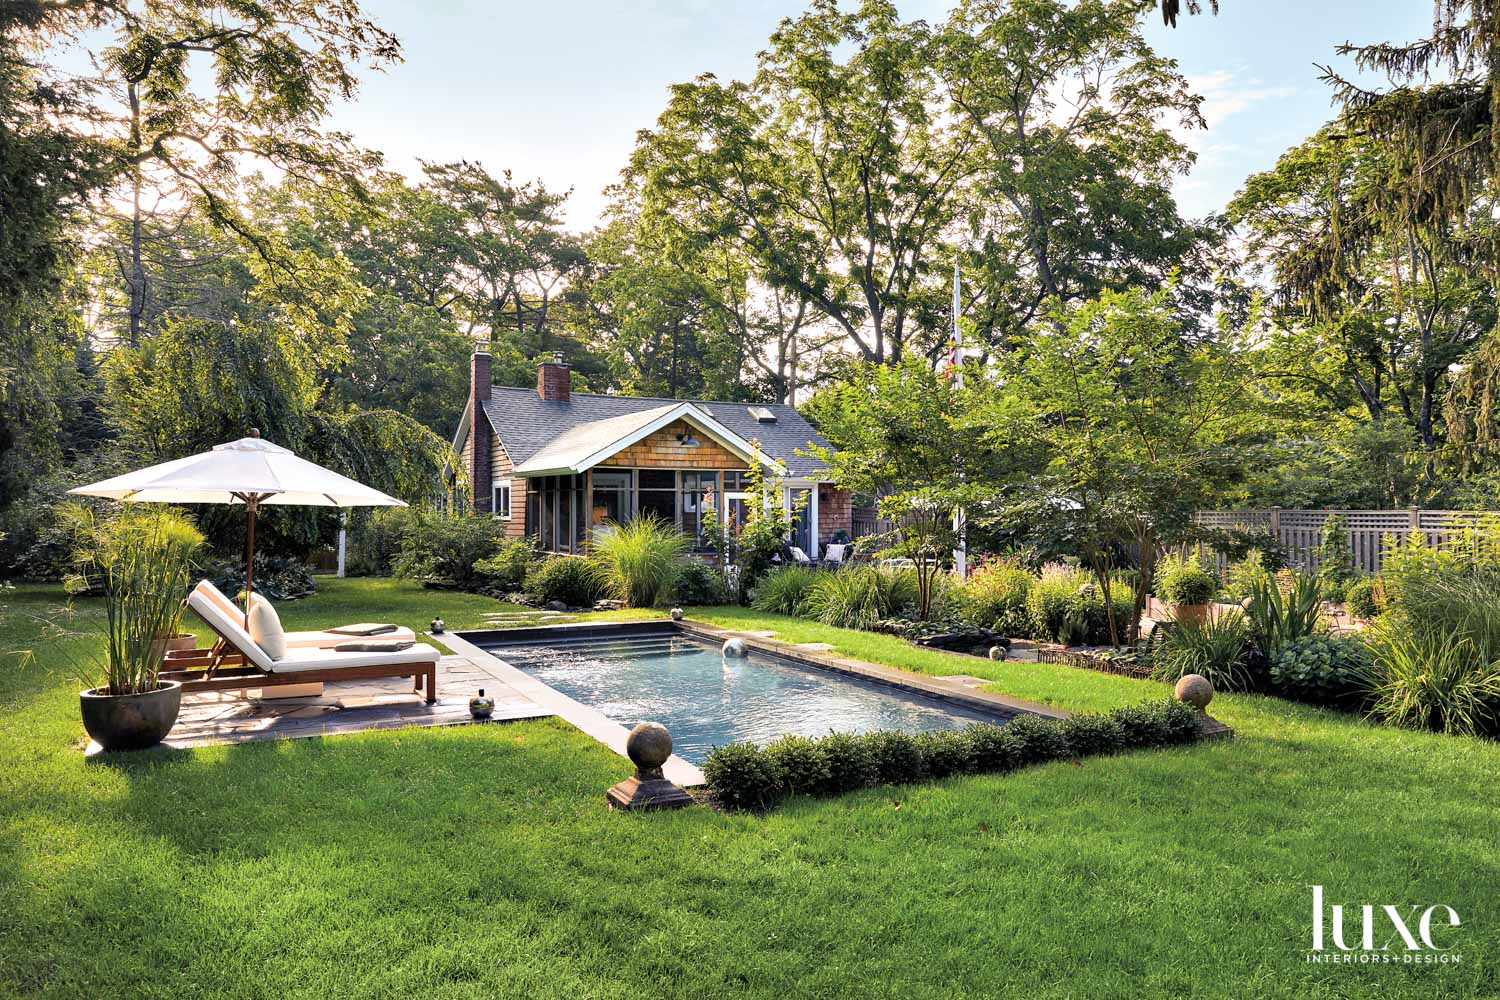 rectangular pool surrounded by greenery